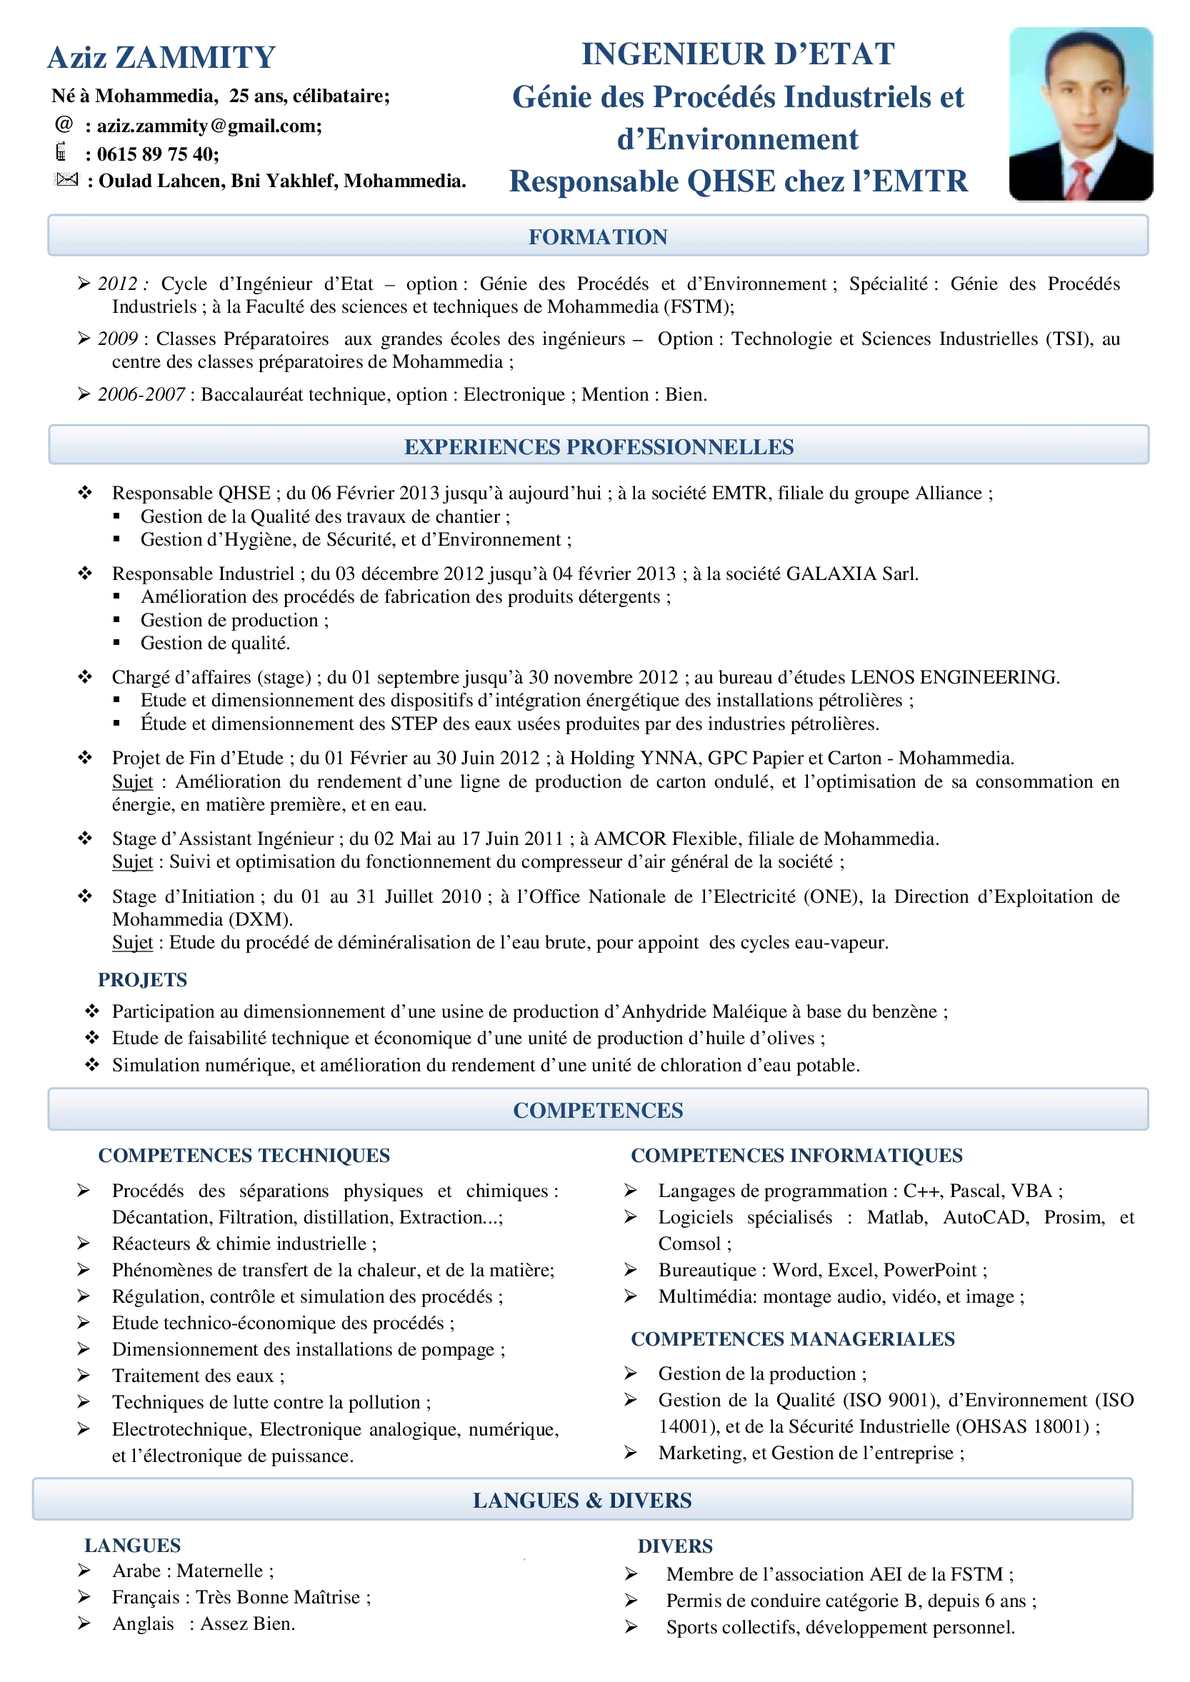 cv ingenieur electronique informatique industrielle